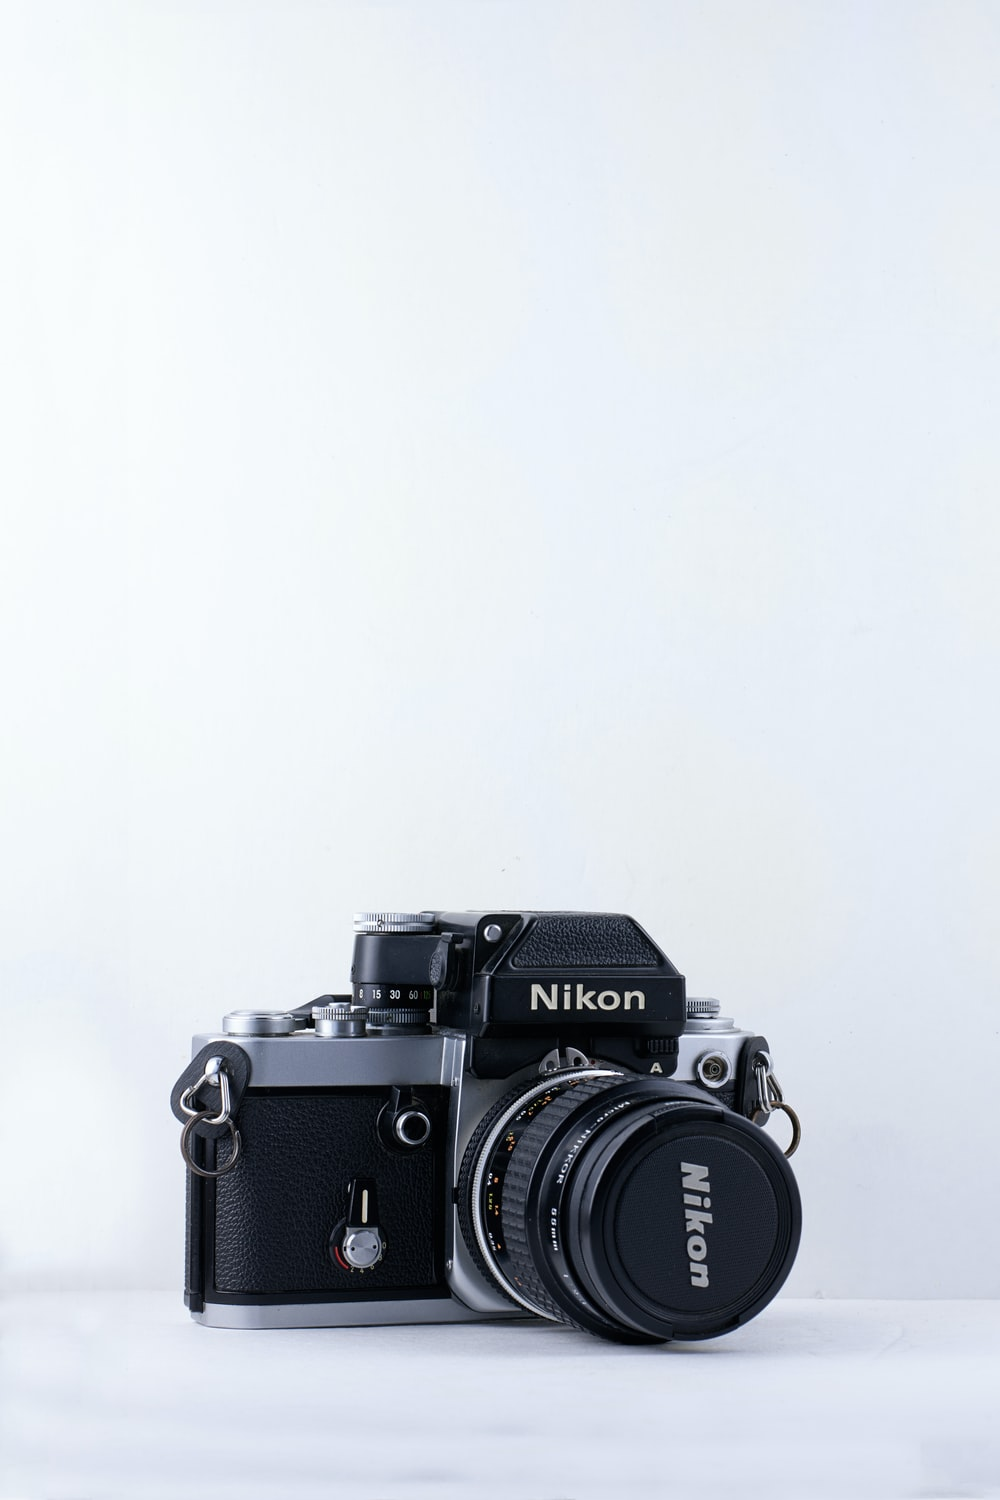 black Nikon camera against white background